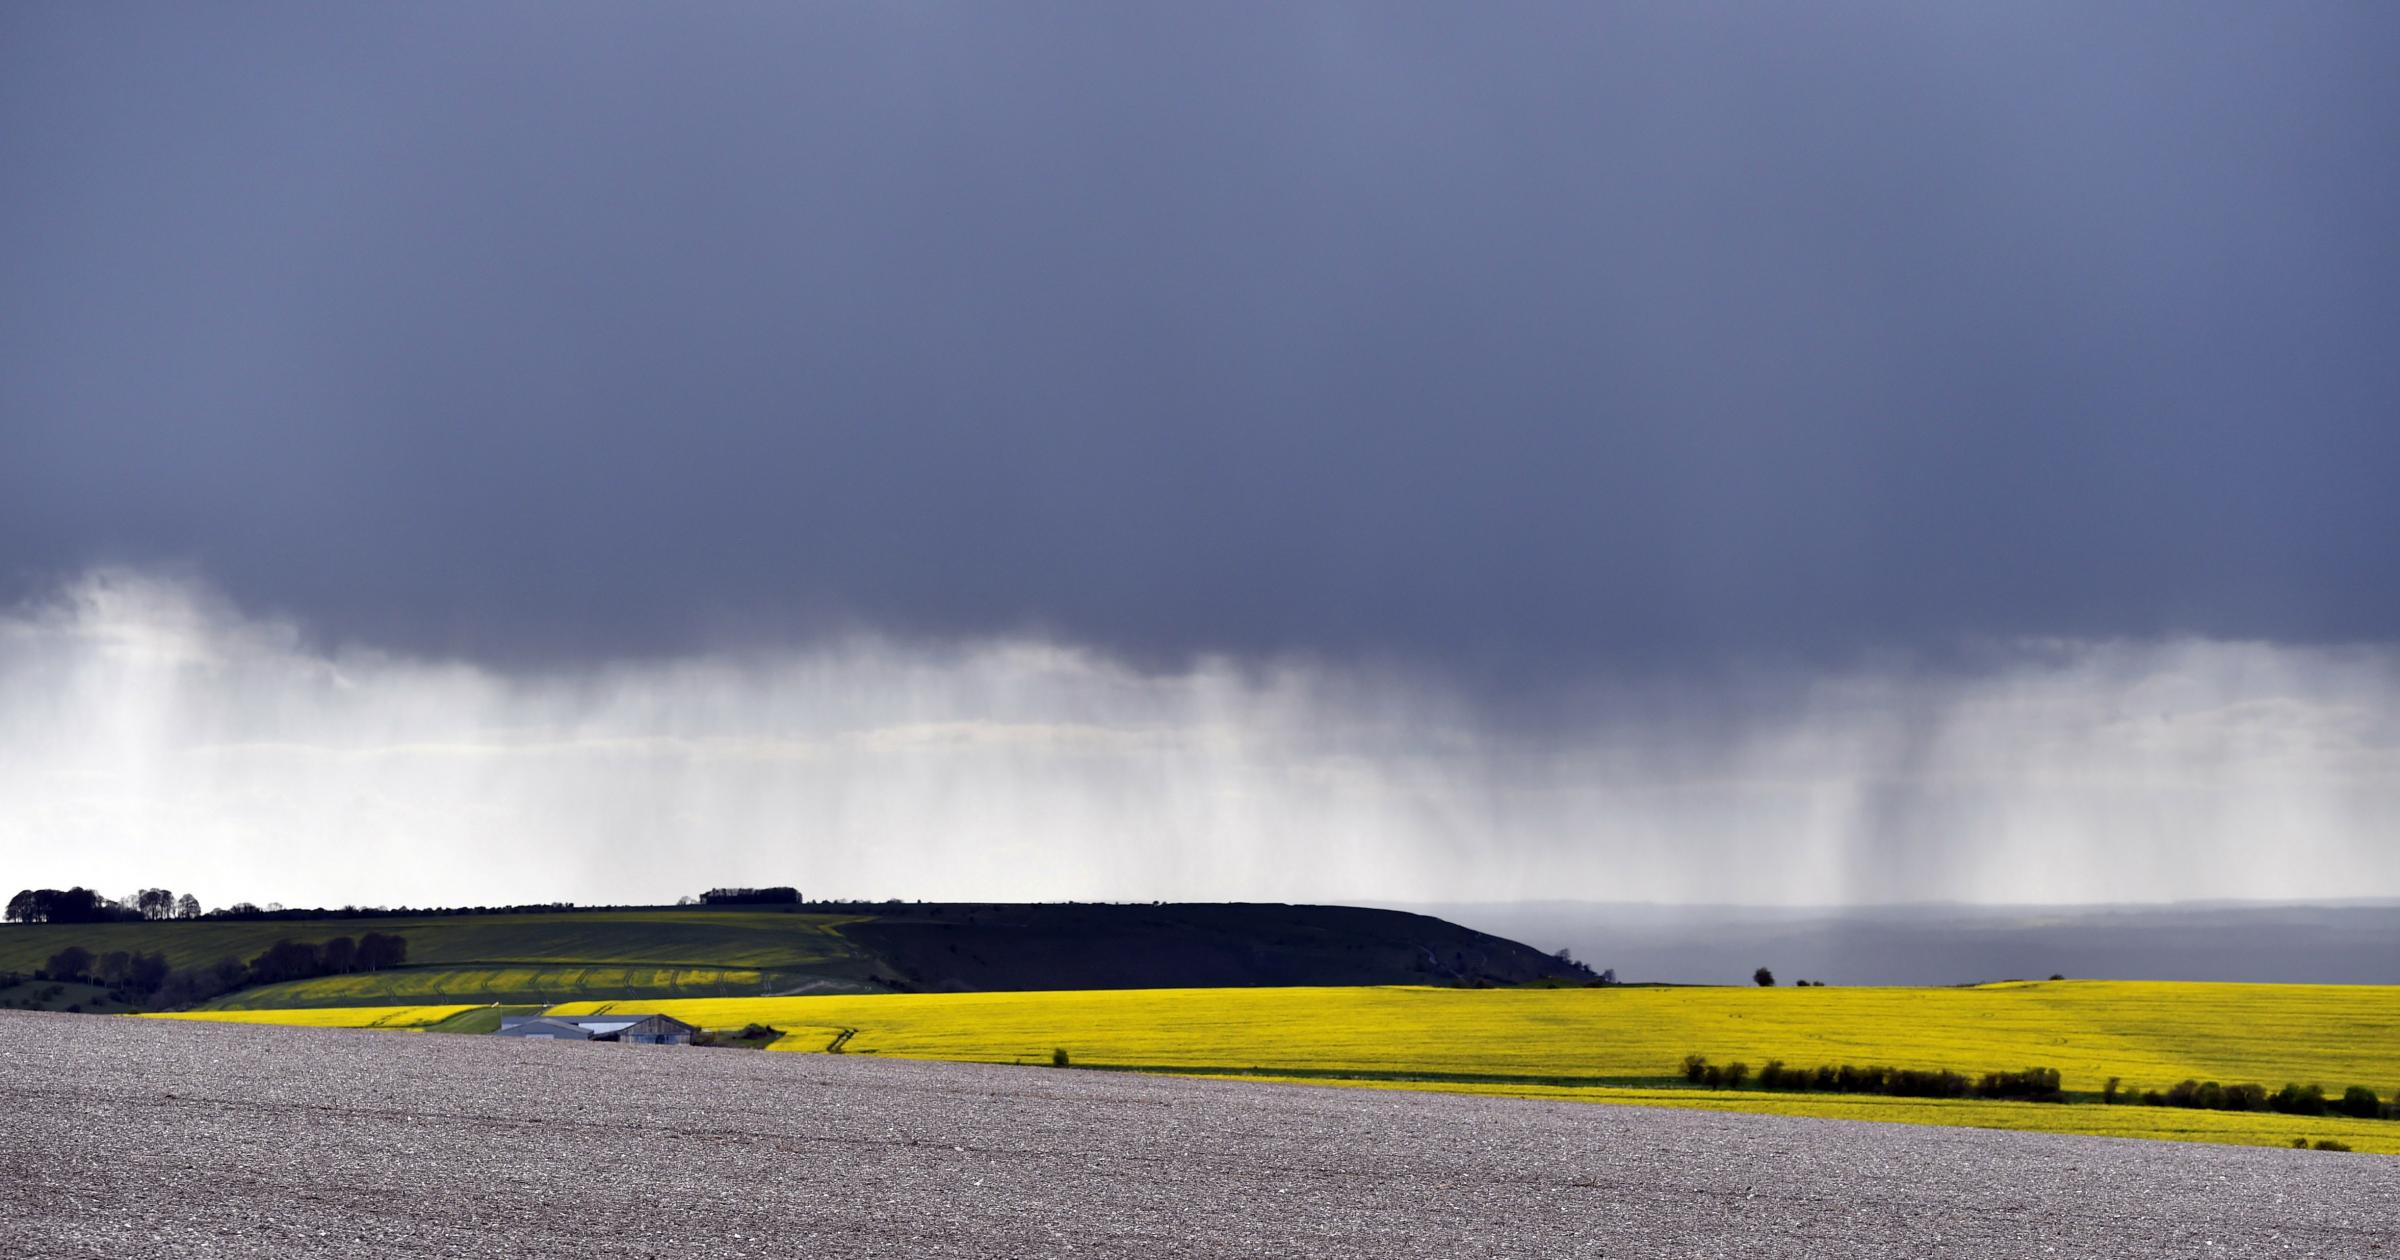 Storm Clouds and Rain fall onto Edington Hill viewed from Salisbury Plain. Pics by Diane Vose DV3068/01.